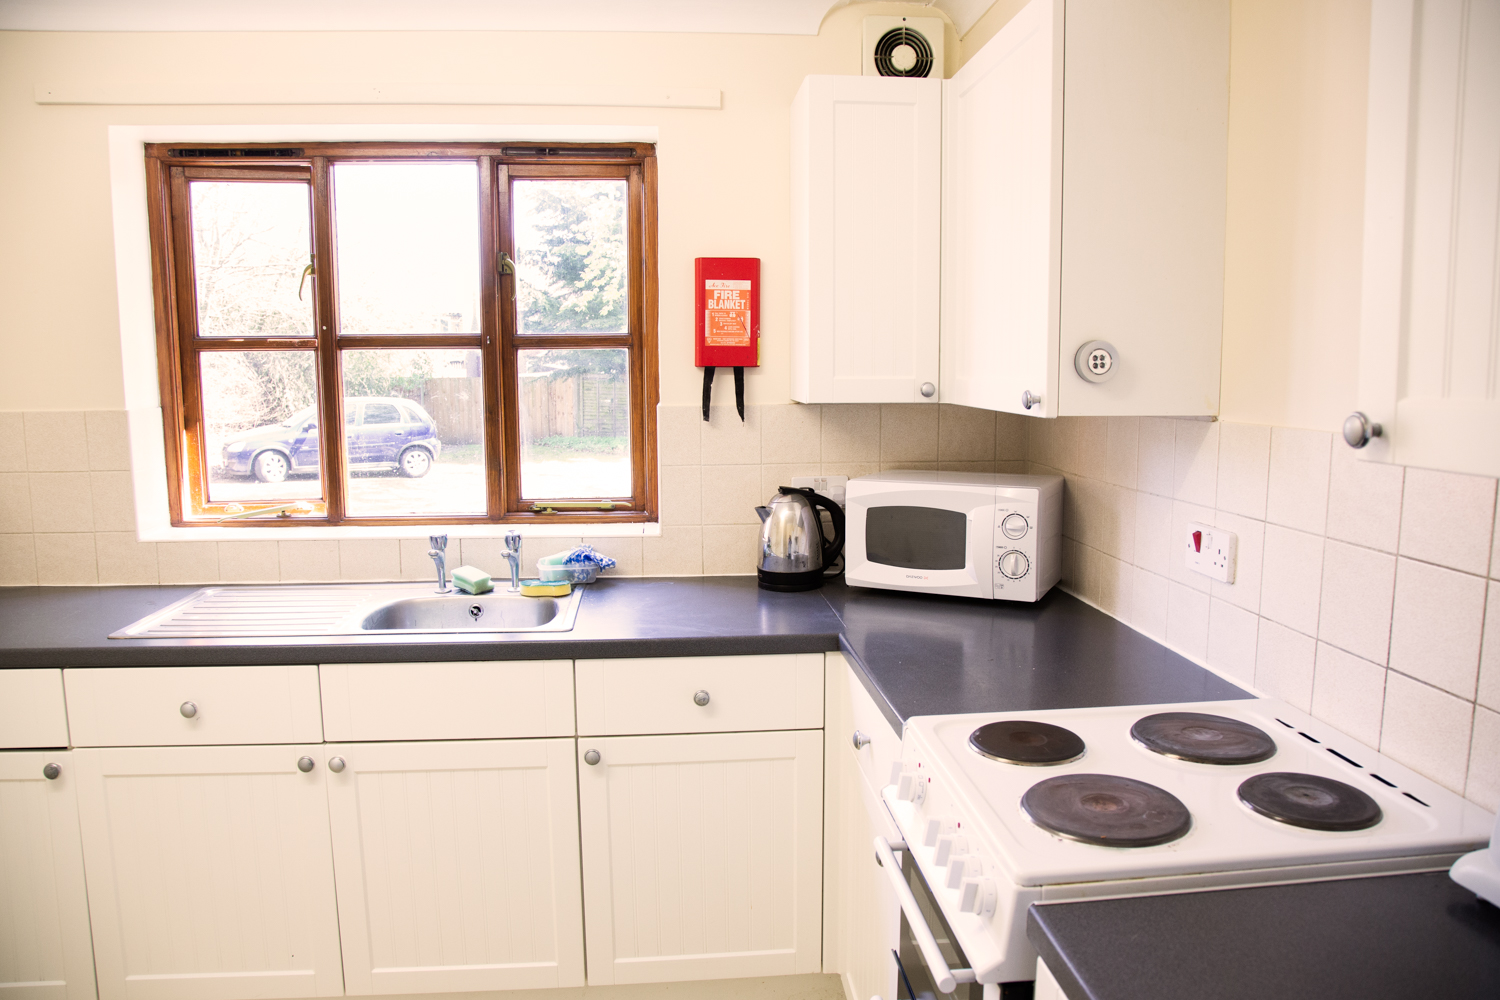 Kitchen at Nicholas Mews, Norwich's best value student accommodation